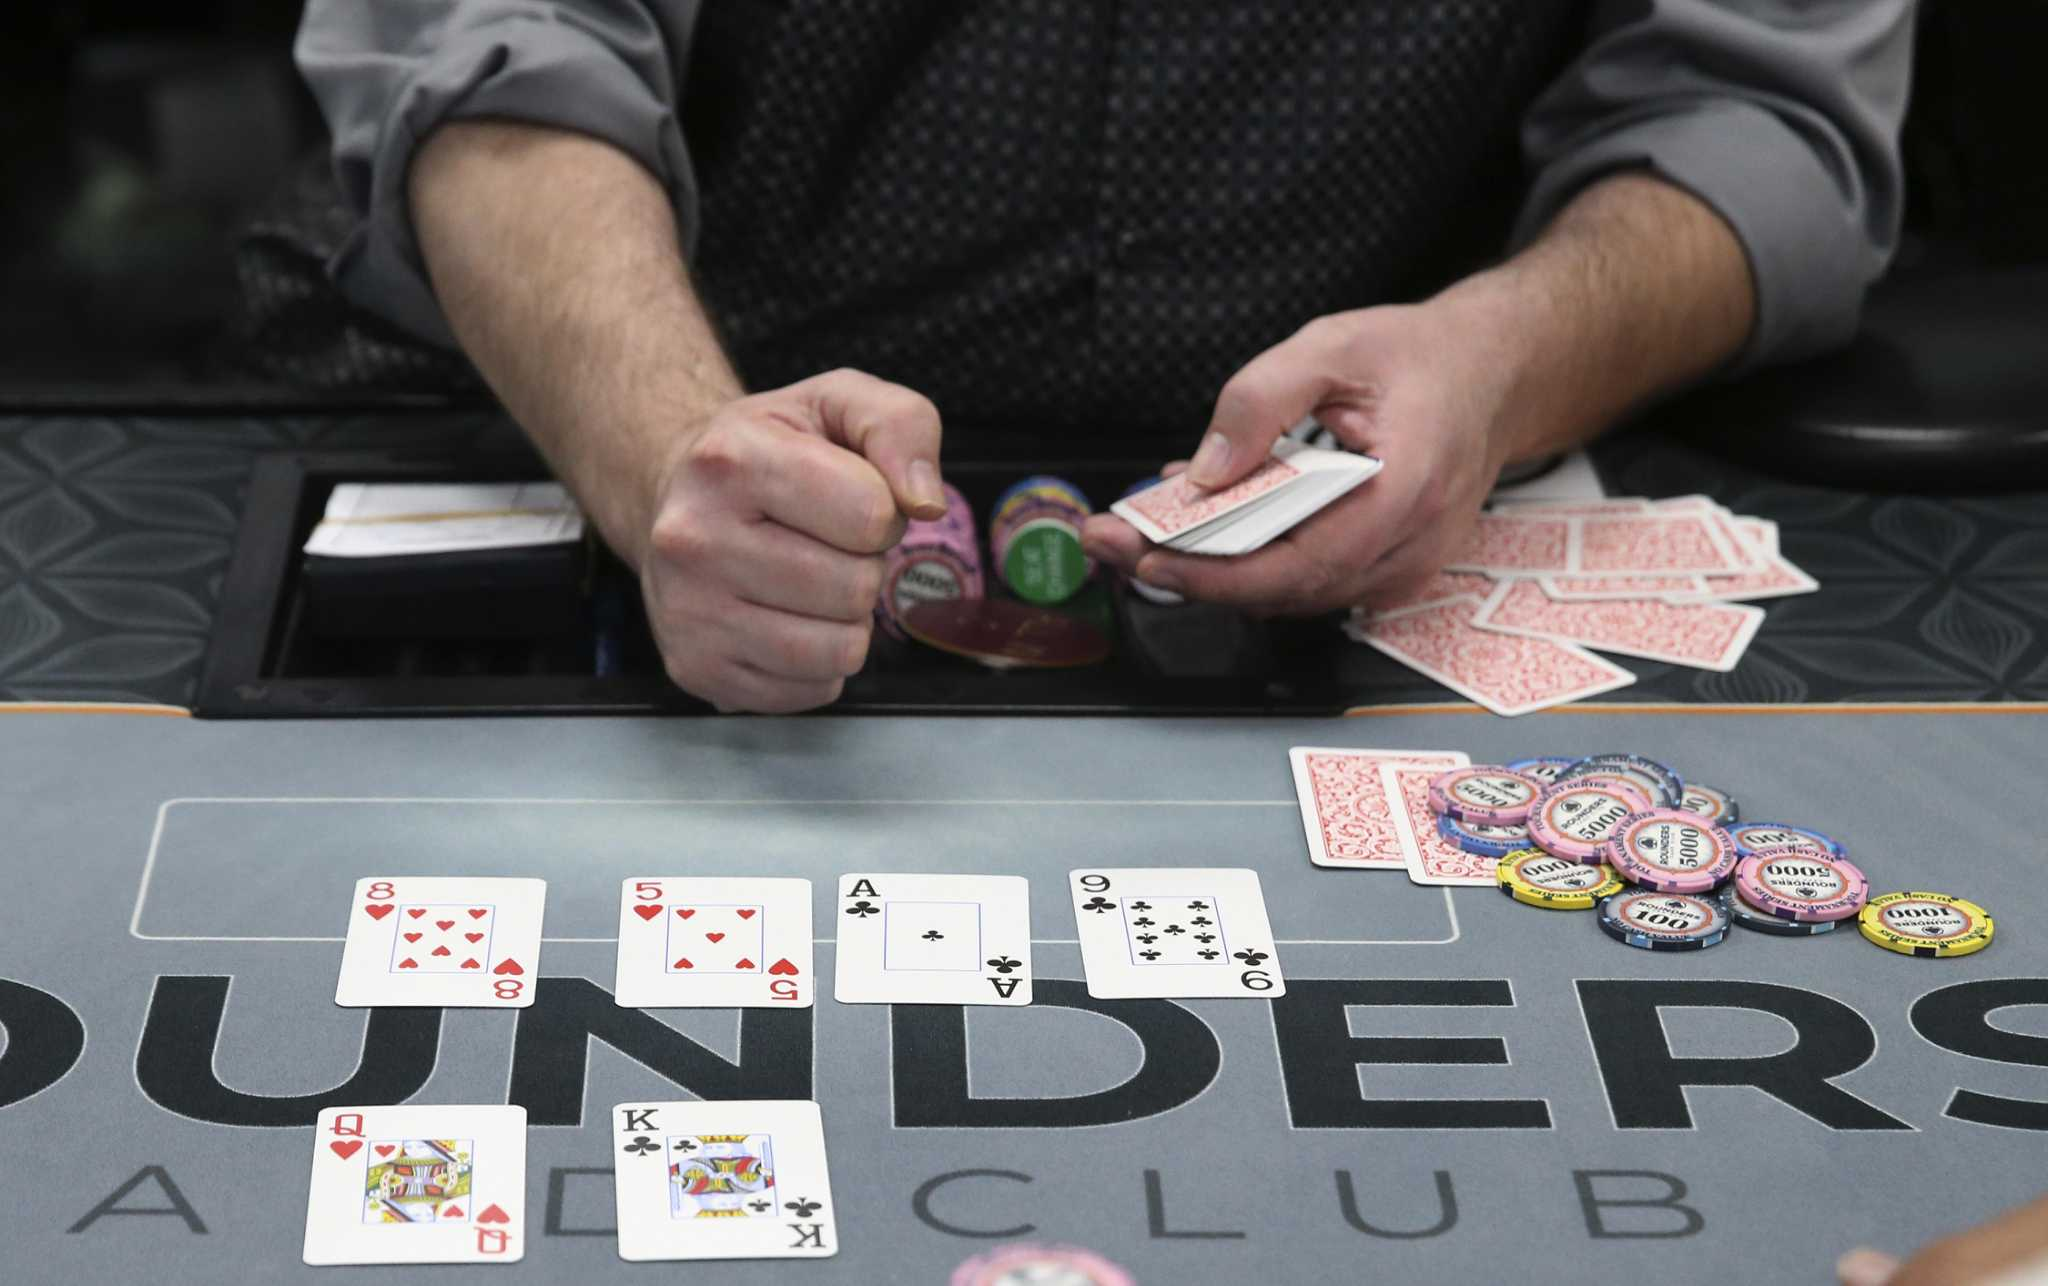 Poker rooms flourishing, but will the law shut them down